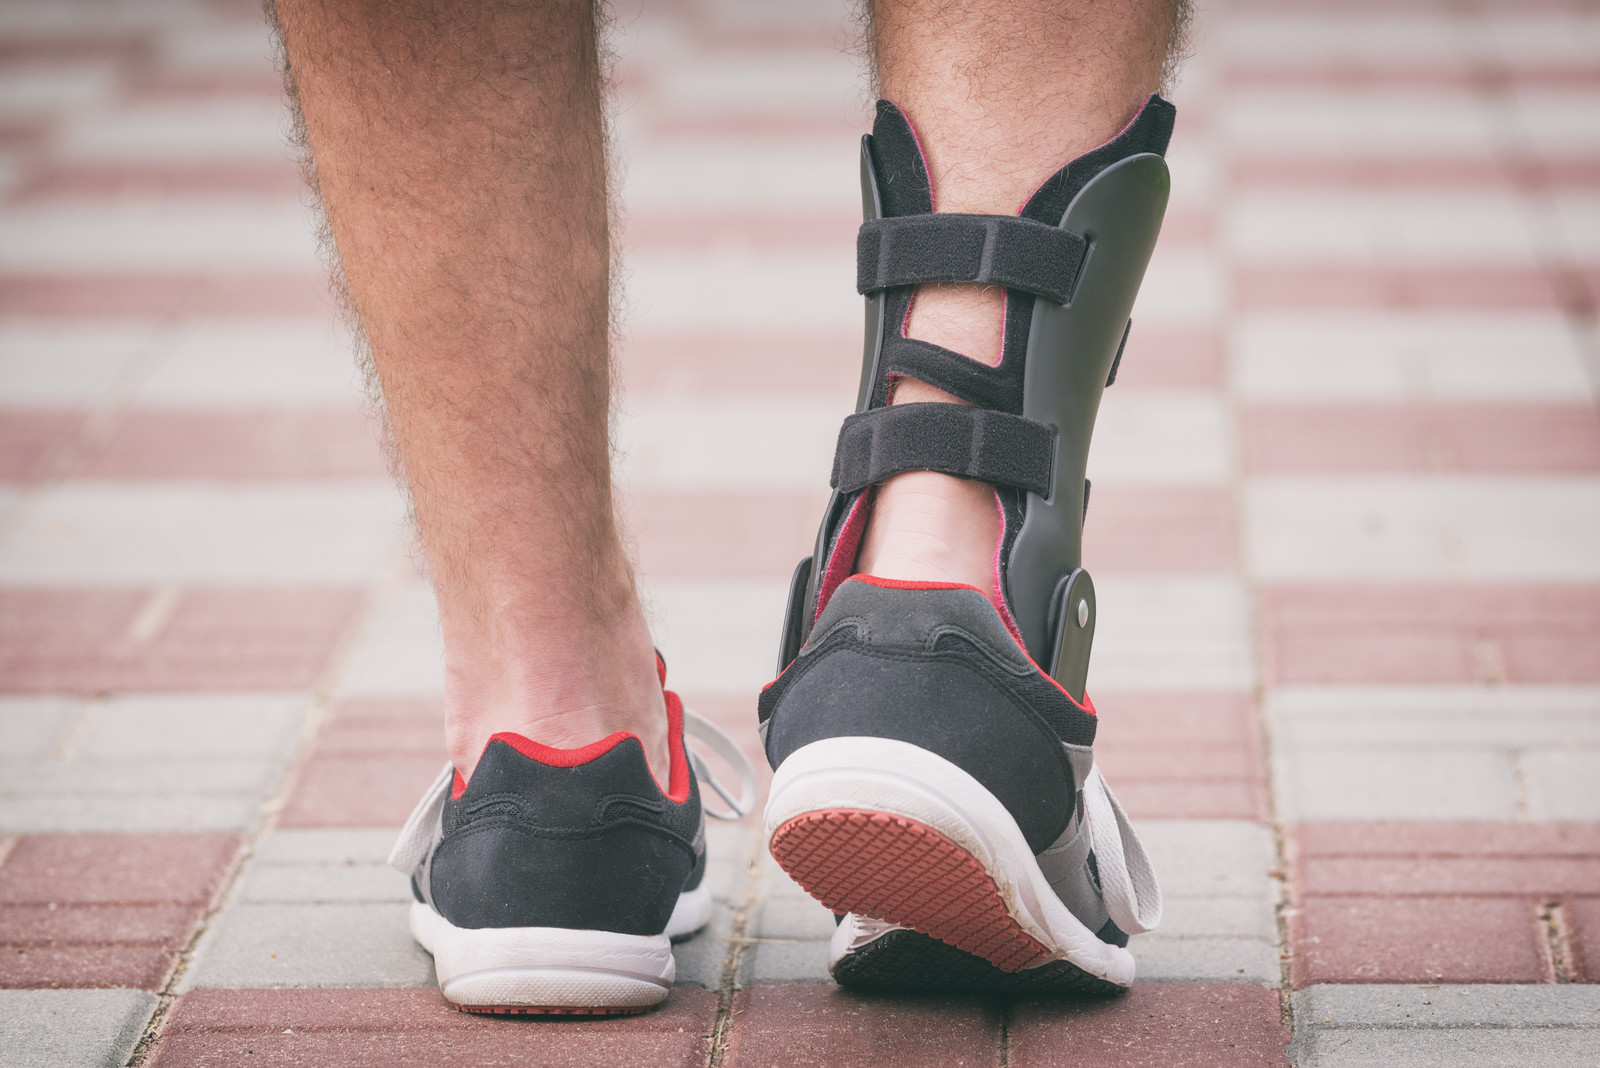 Get Support: The Importance of Good Bracing